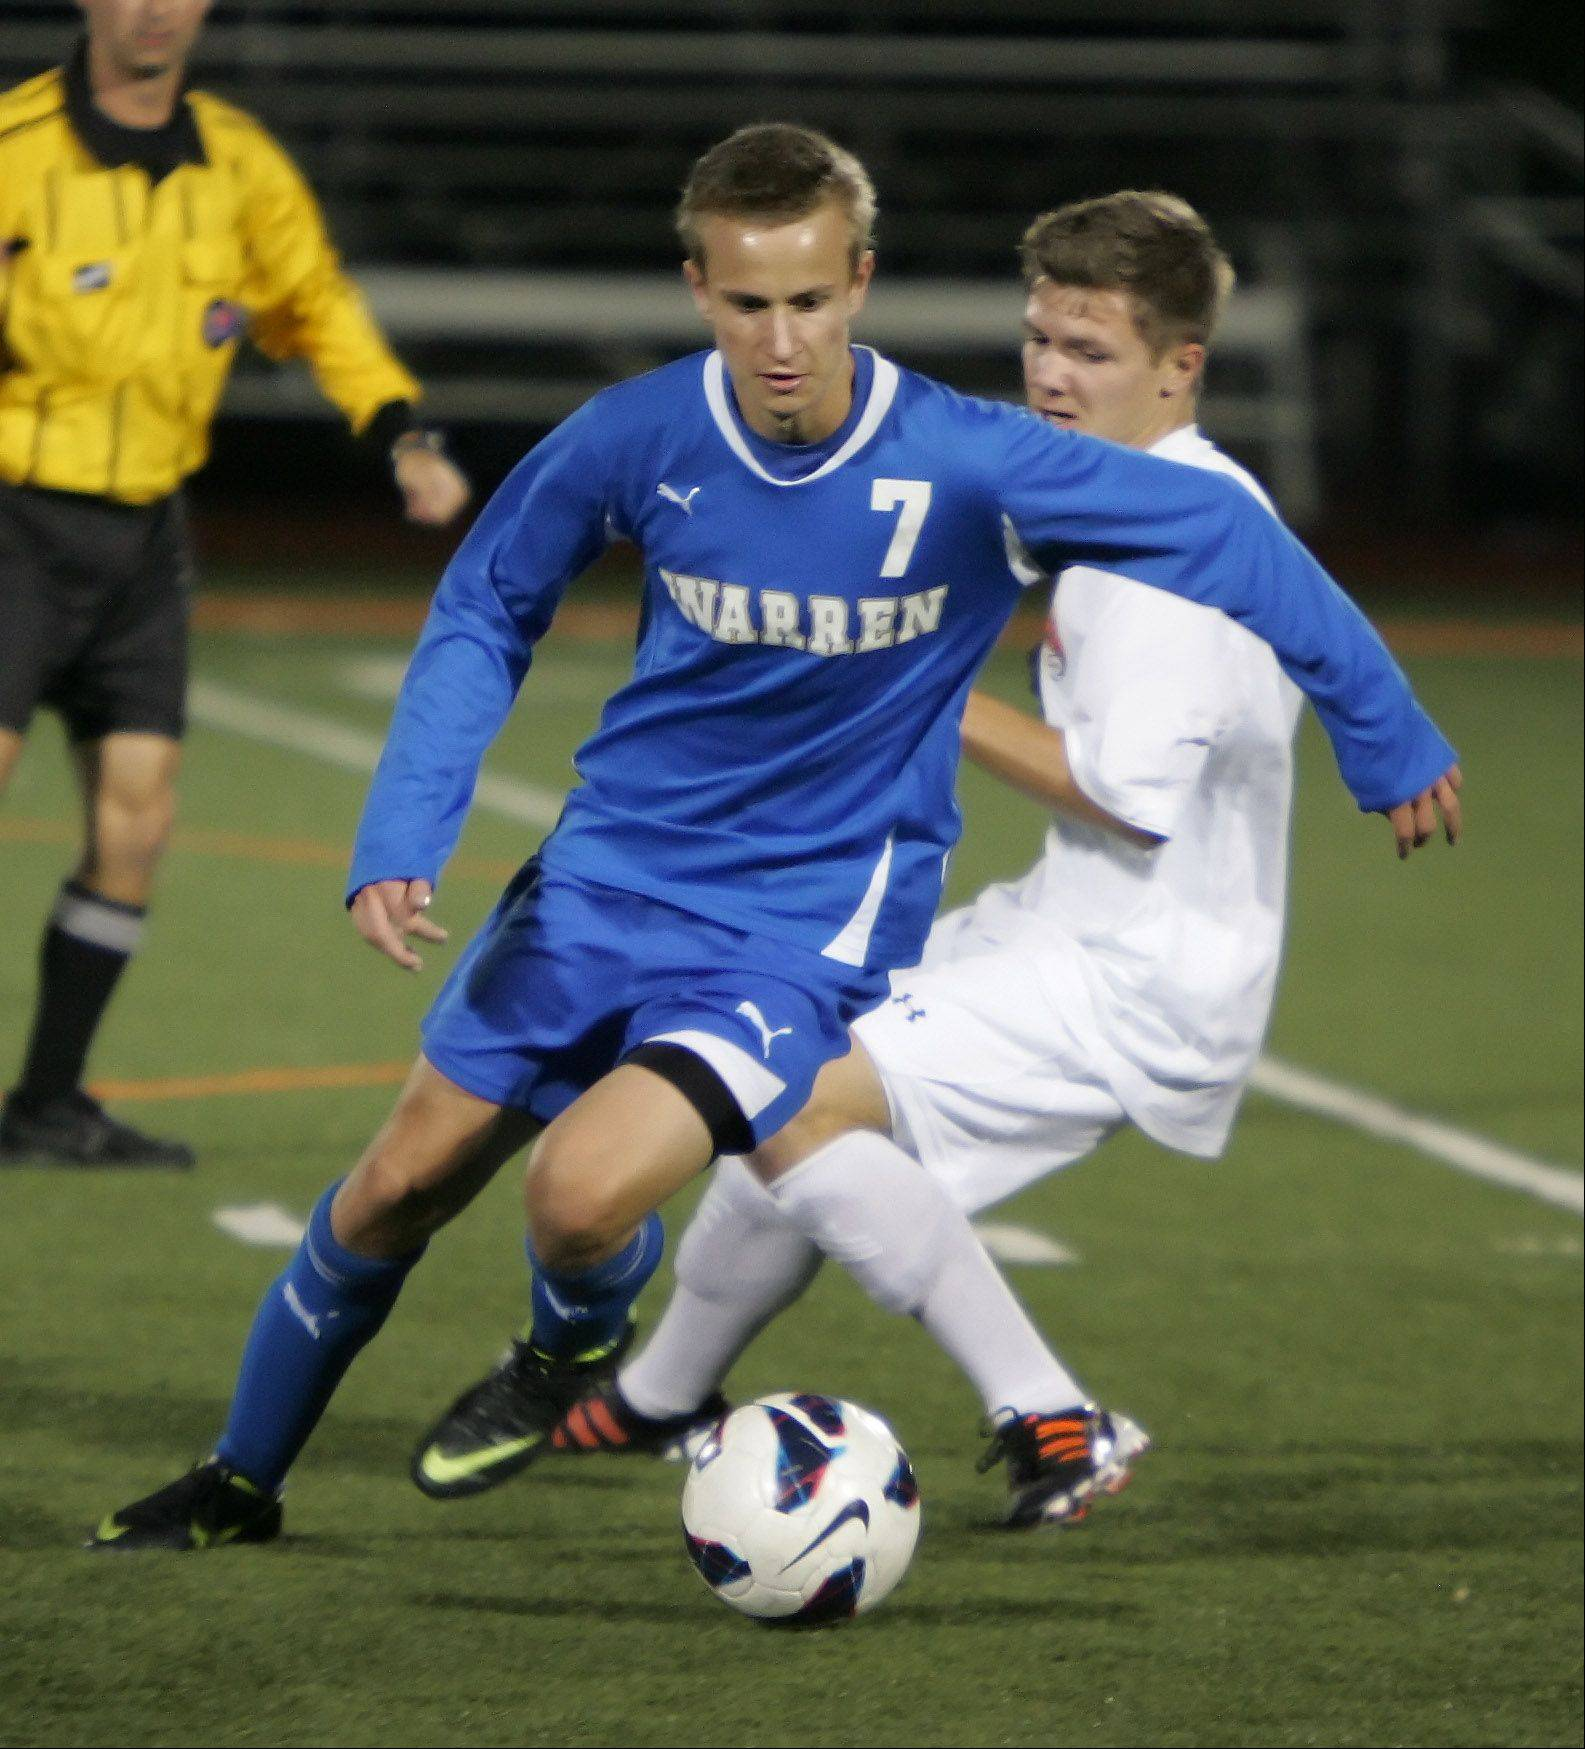 Warren midfielder Nick Wegrznowicz moves around Libertyville's Rahf Zehnter on Thursday at Libertyville.